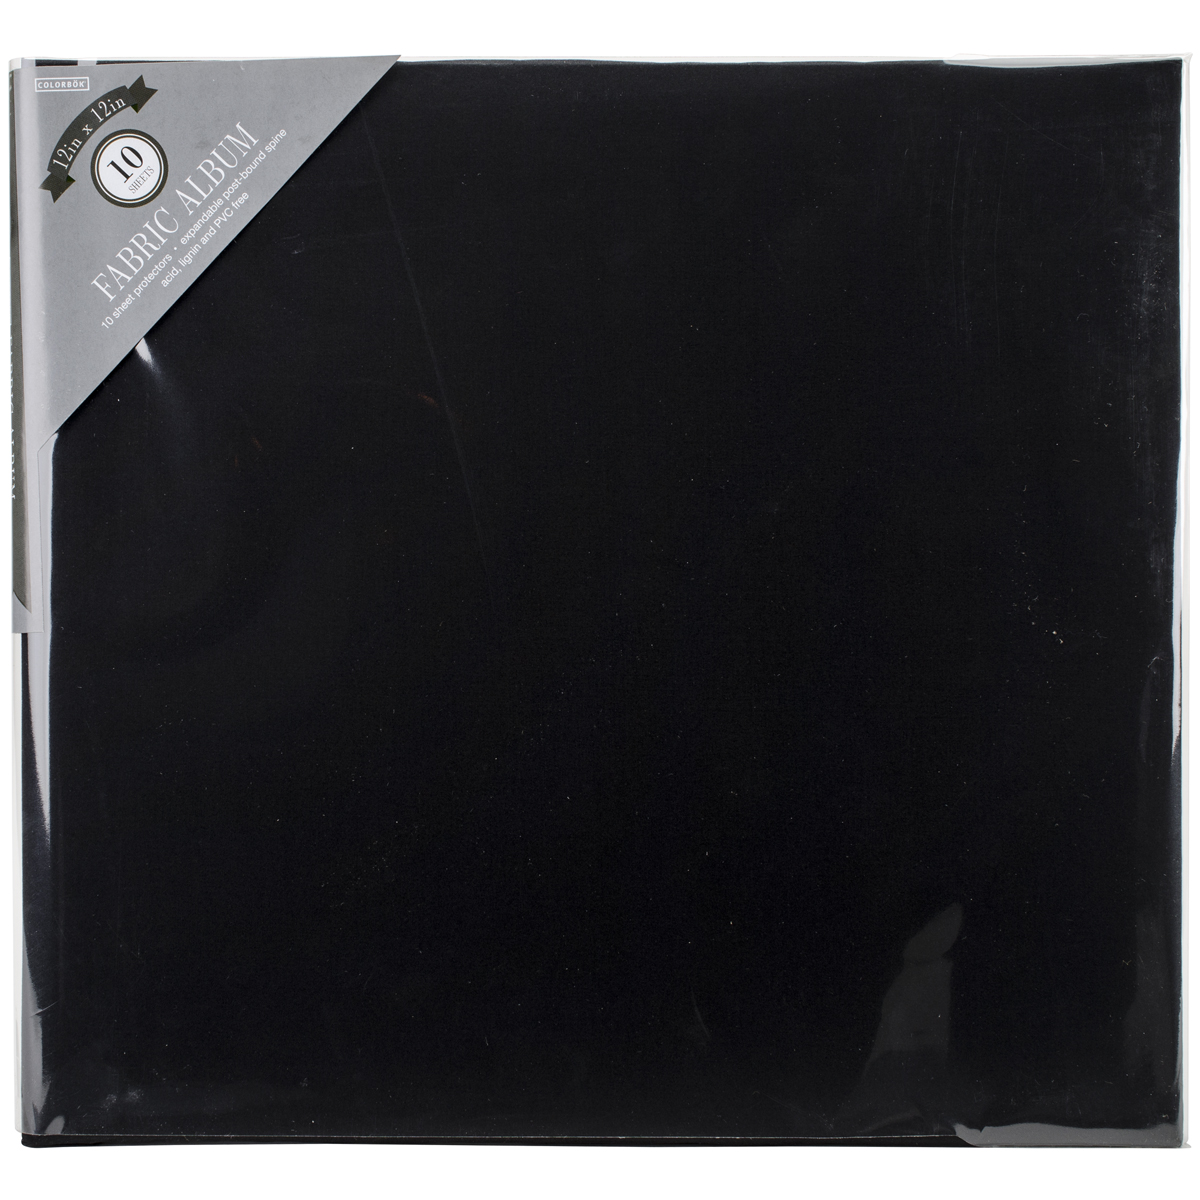 Includes 10 Acid Free 12x12 Inch Pages Vintage Travel Expandable Scrapbook